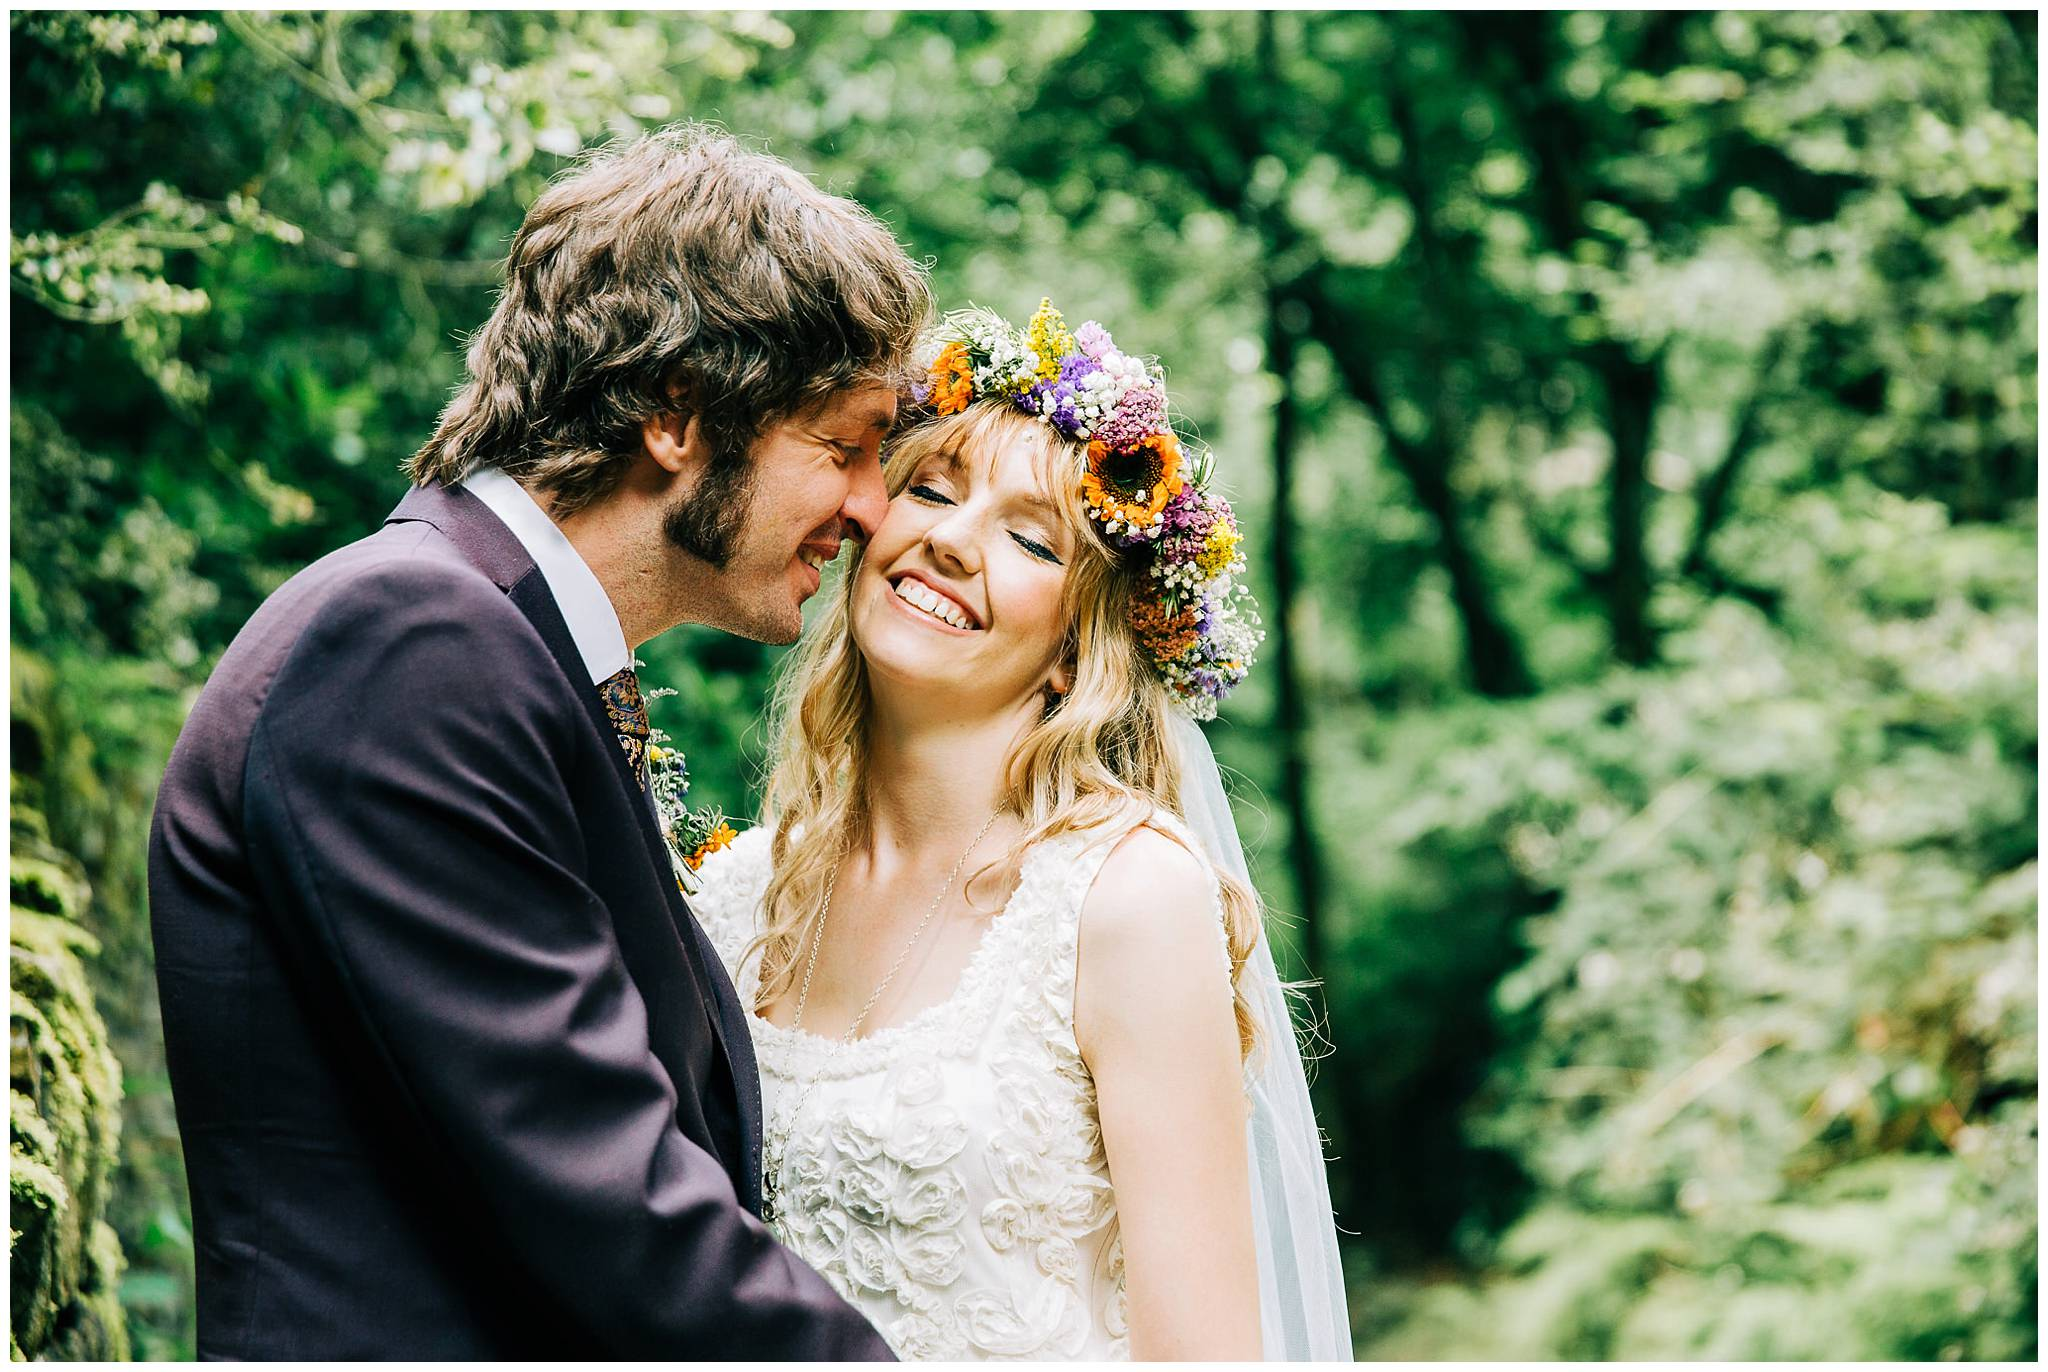 groom with his nose on brides cheek and bride smiling happily